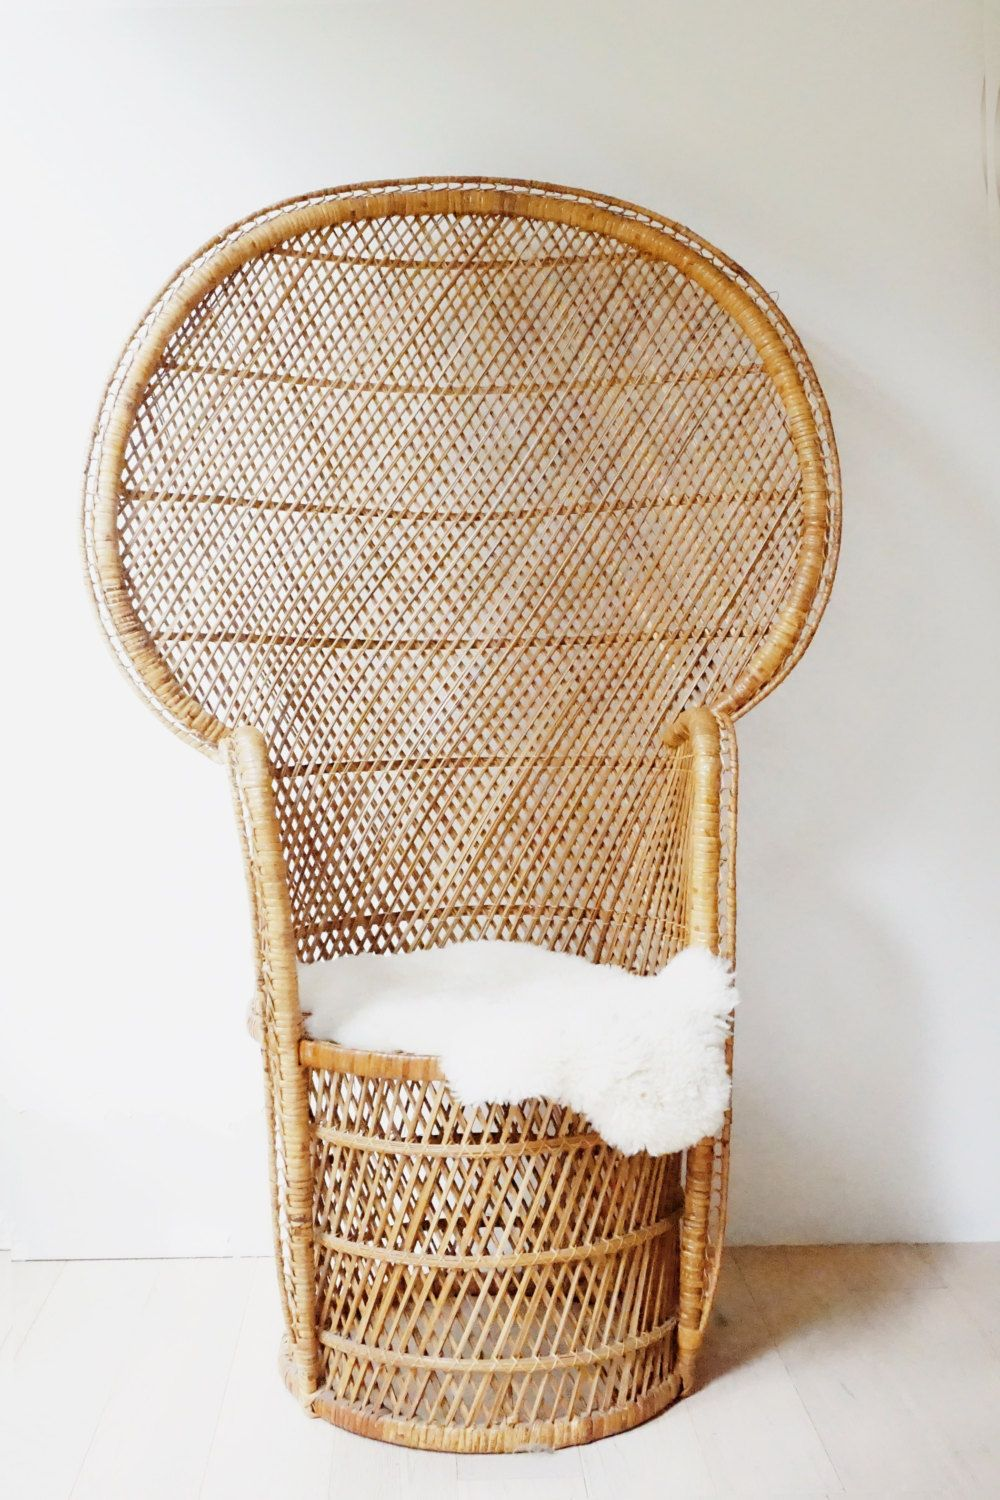 Vintage Peacock Chair Rattan Full Size Woven Handmade 70s Wicker